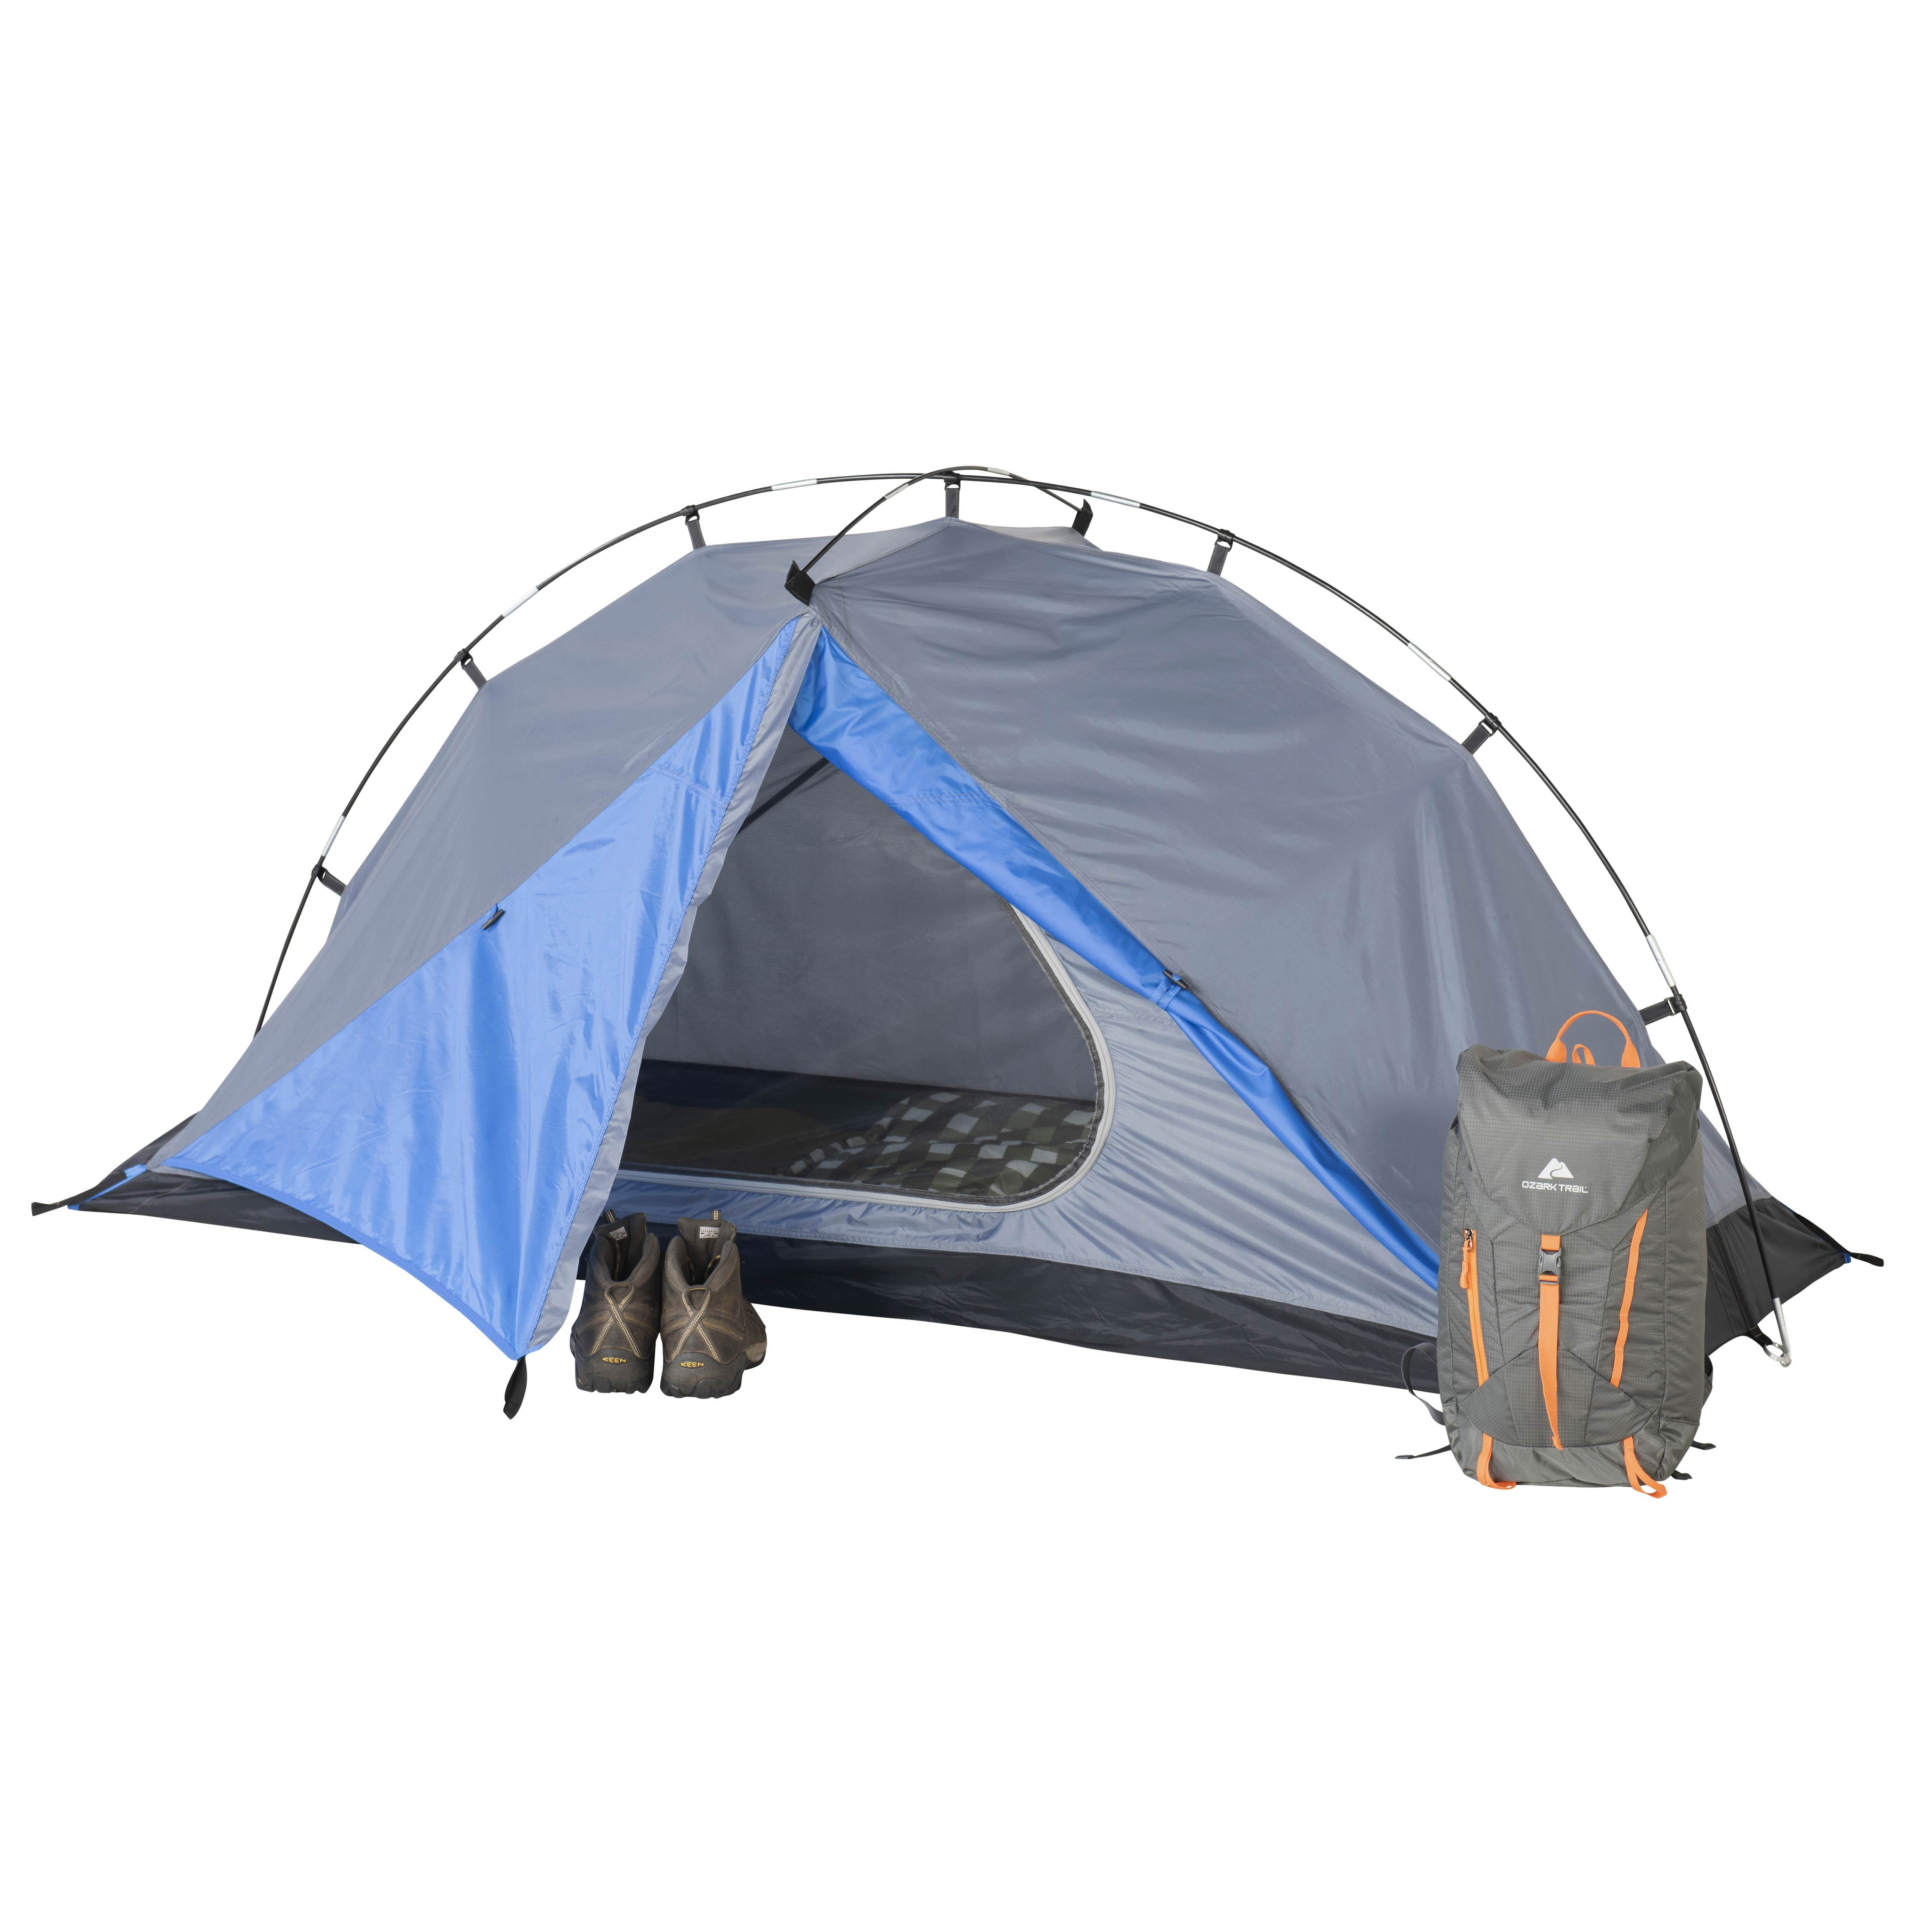 f4ab90466d Ozark Trail 1-Person Backpacking Tent - Walmart.com